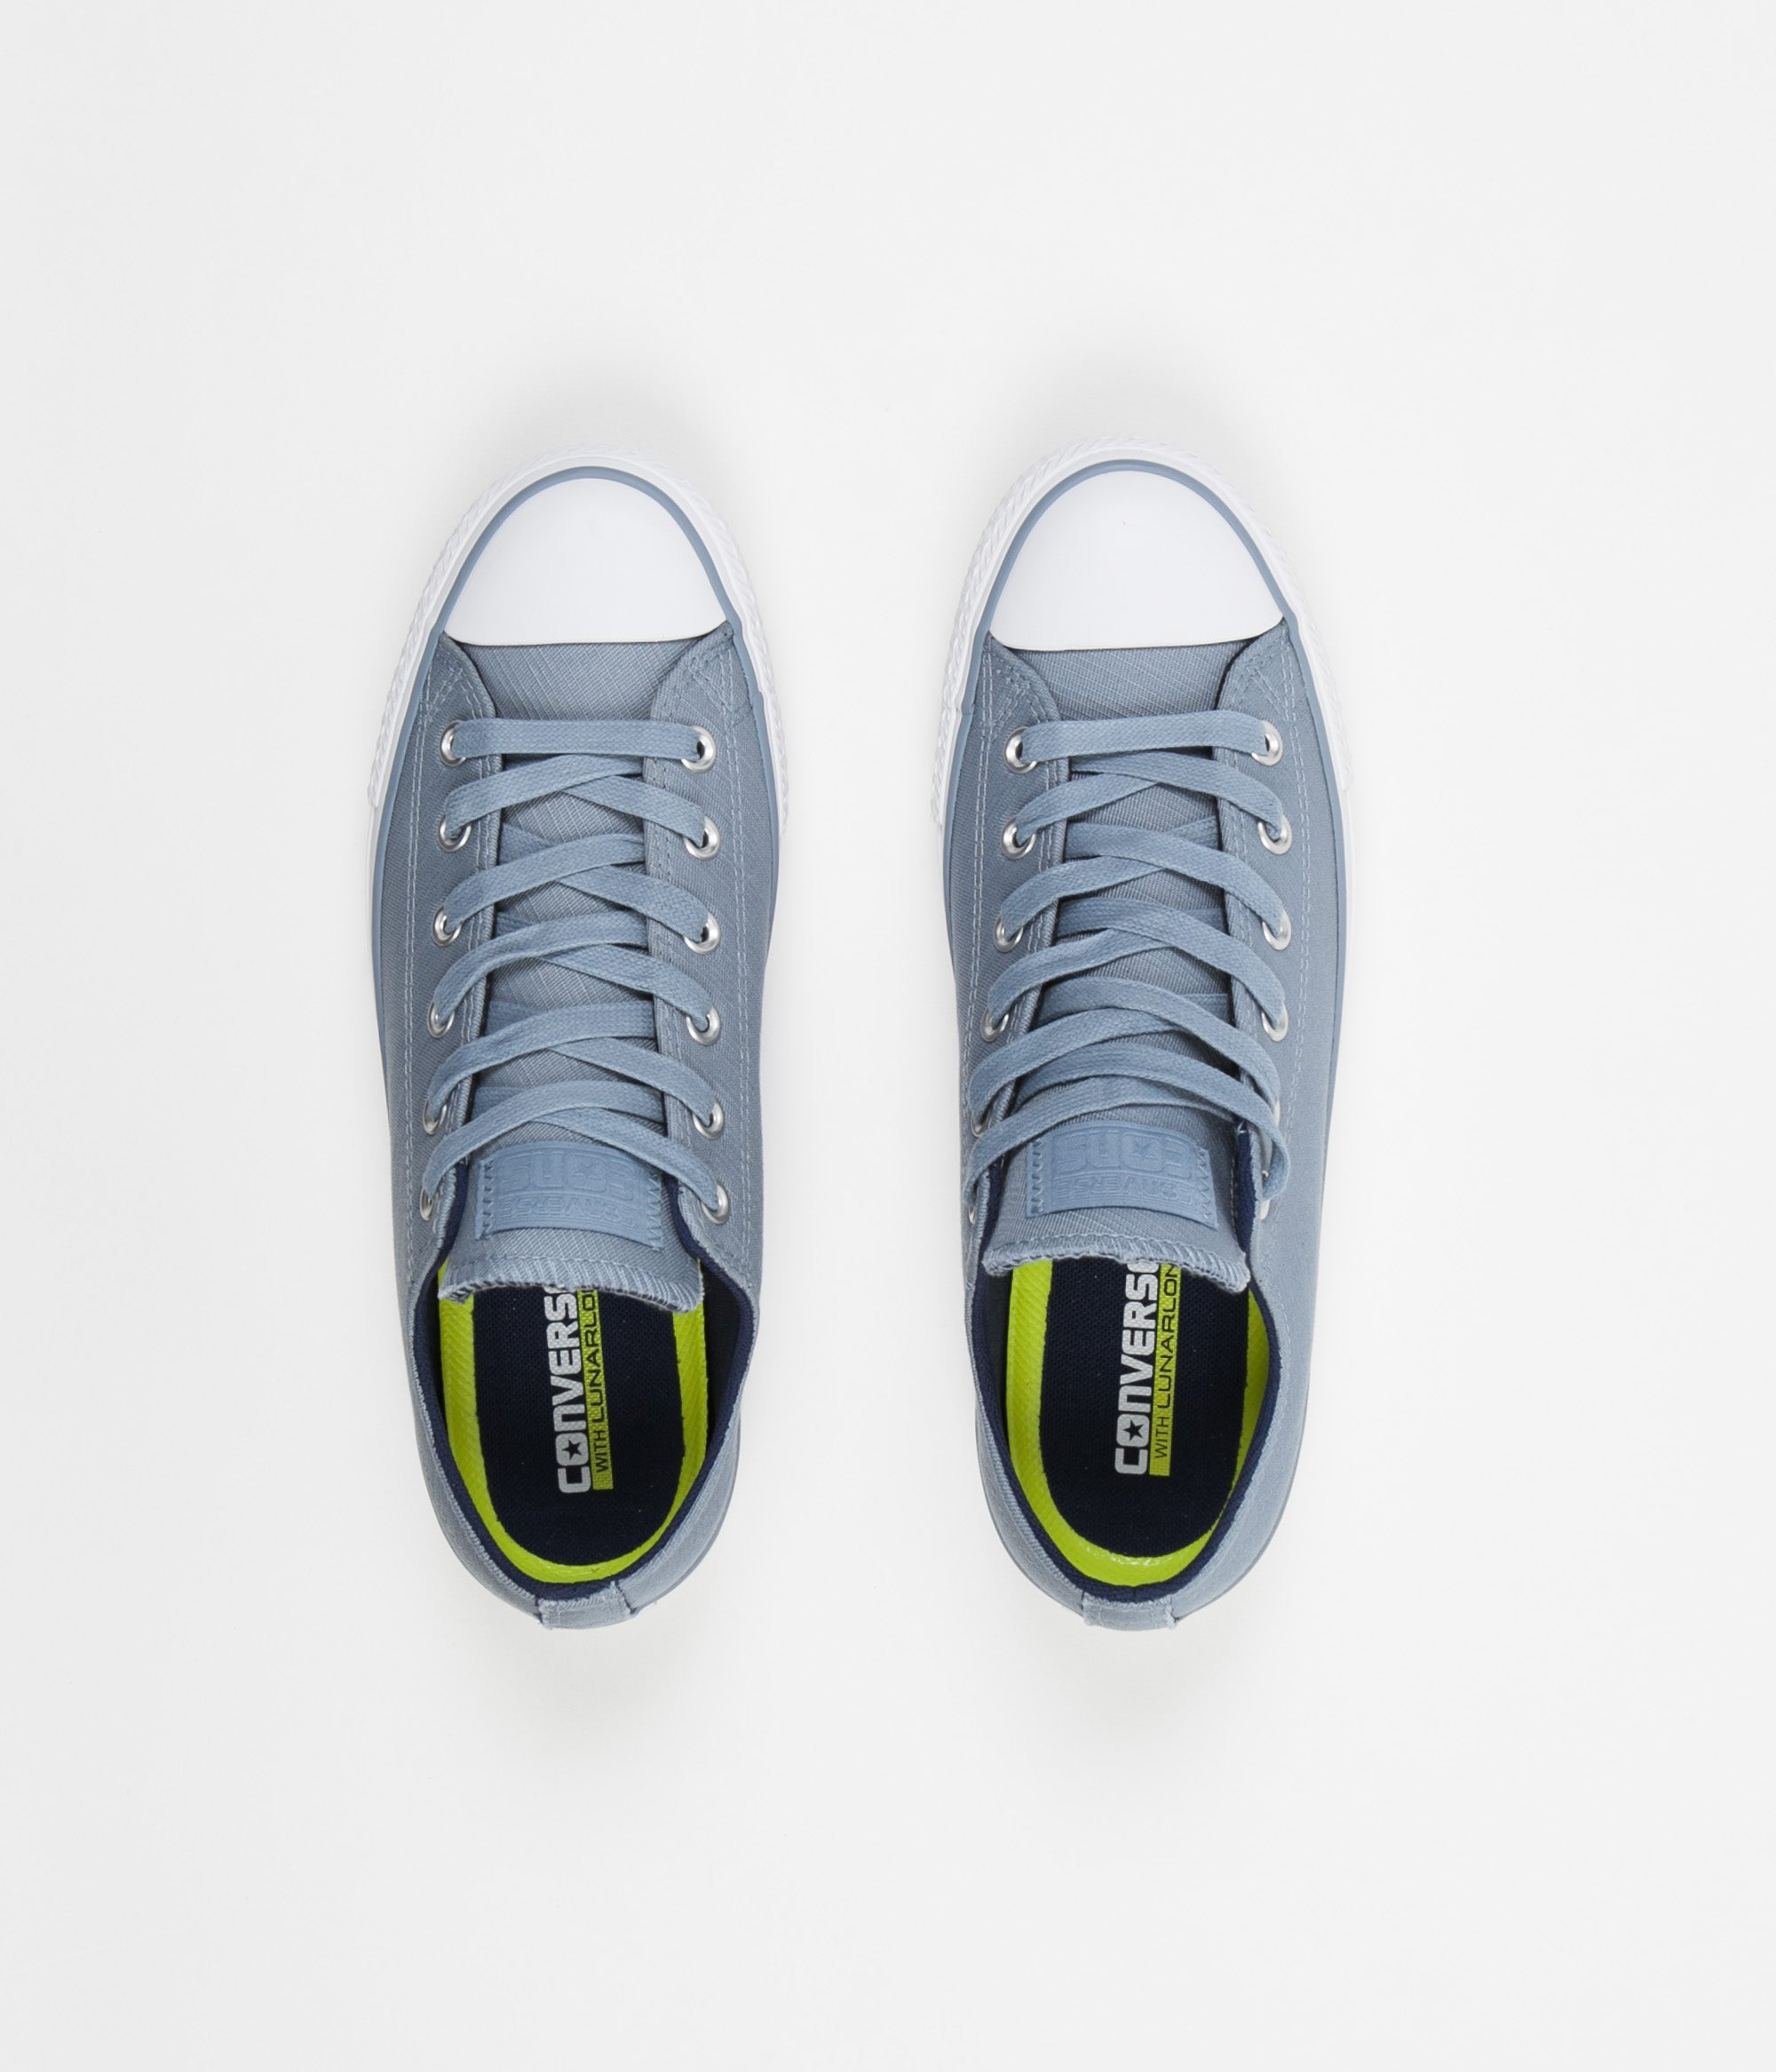 Converse CTAS Pro OX Shoes - Blue Slate / Midnight Navy